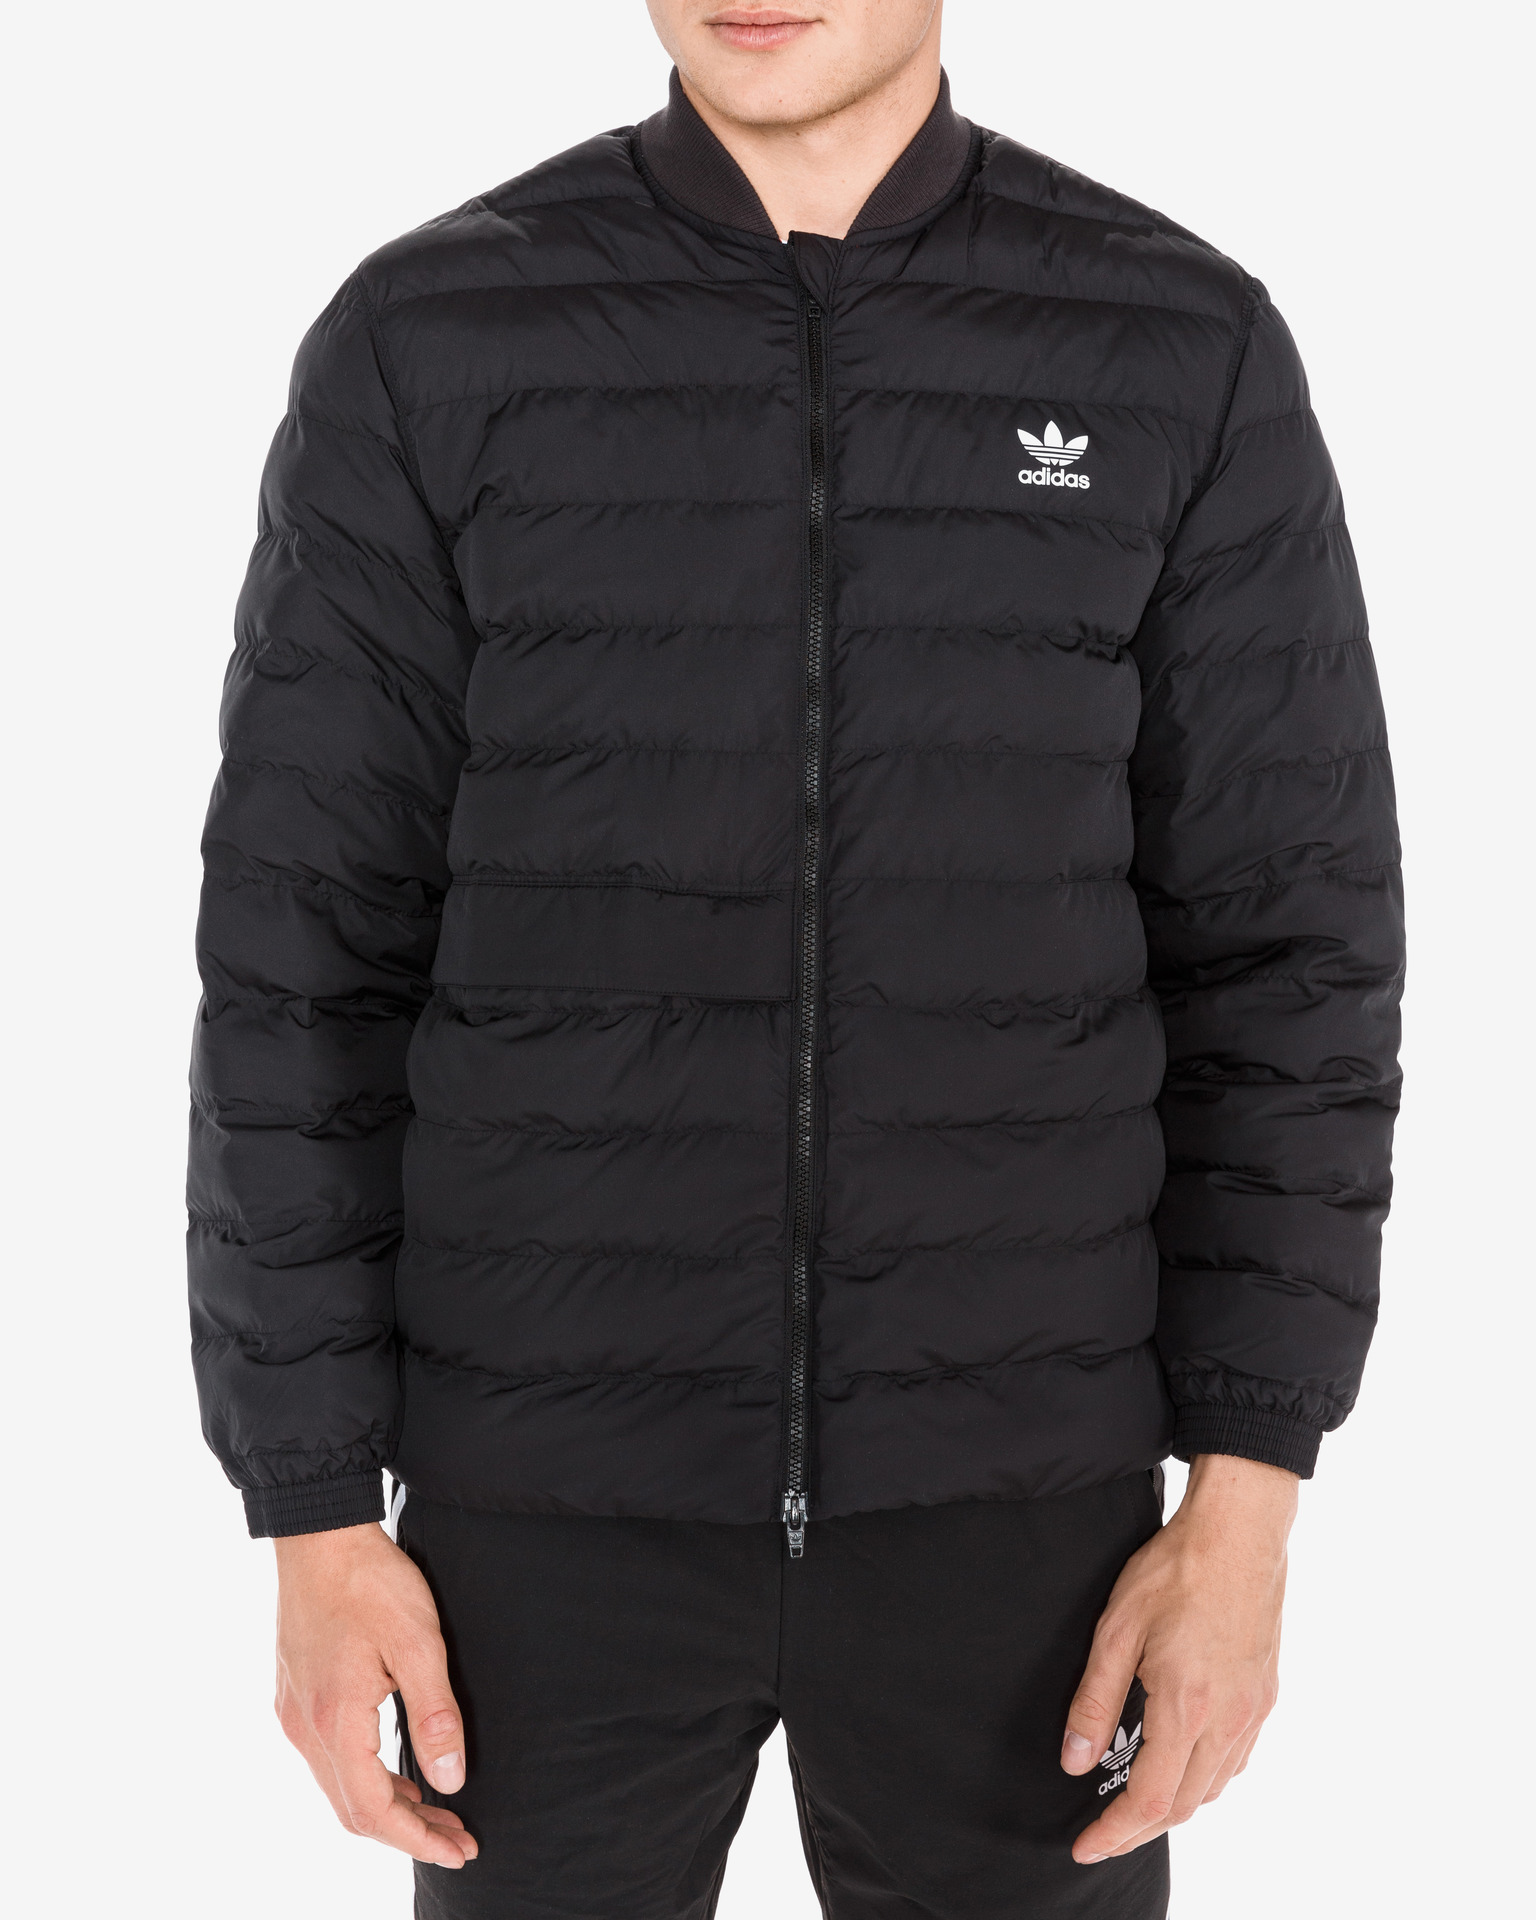 SST Outdoor Bunda adidas Originals